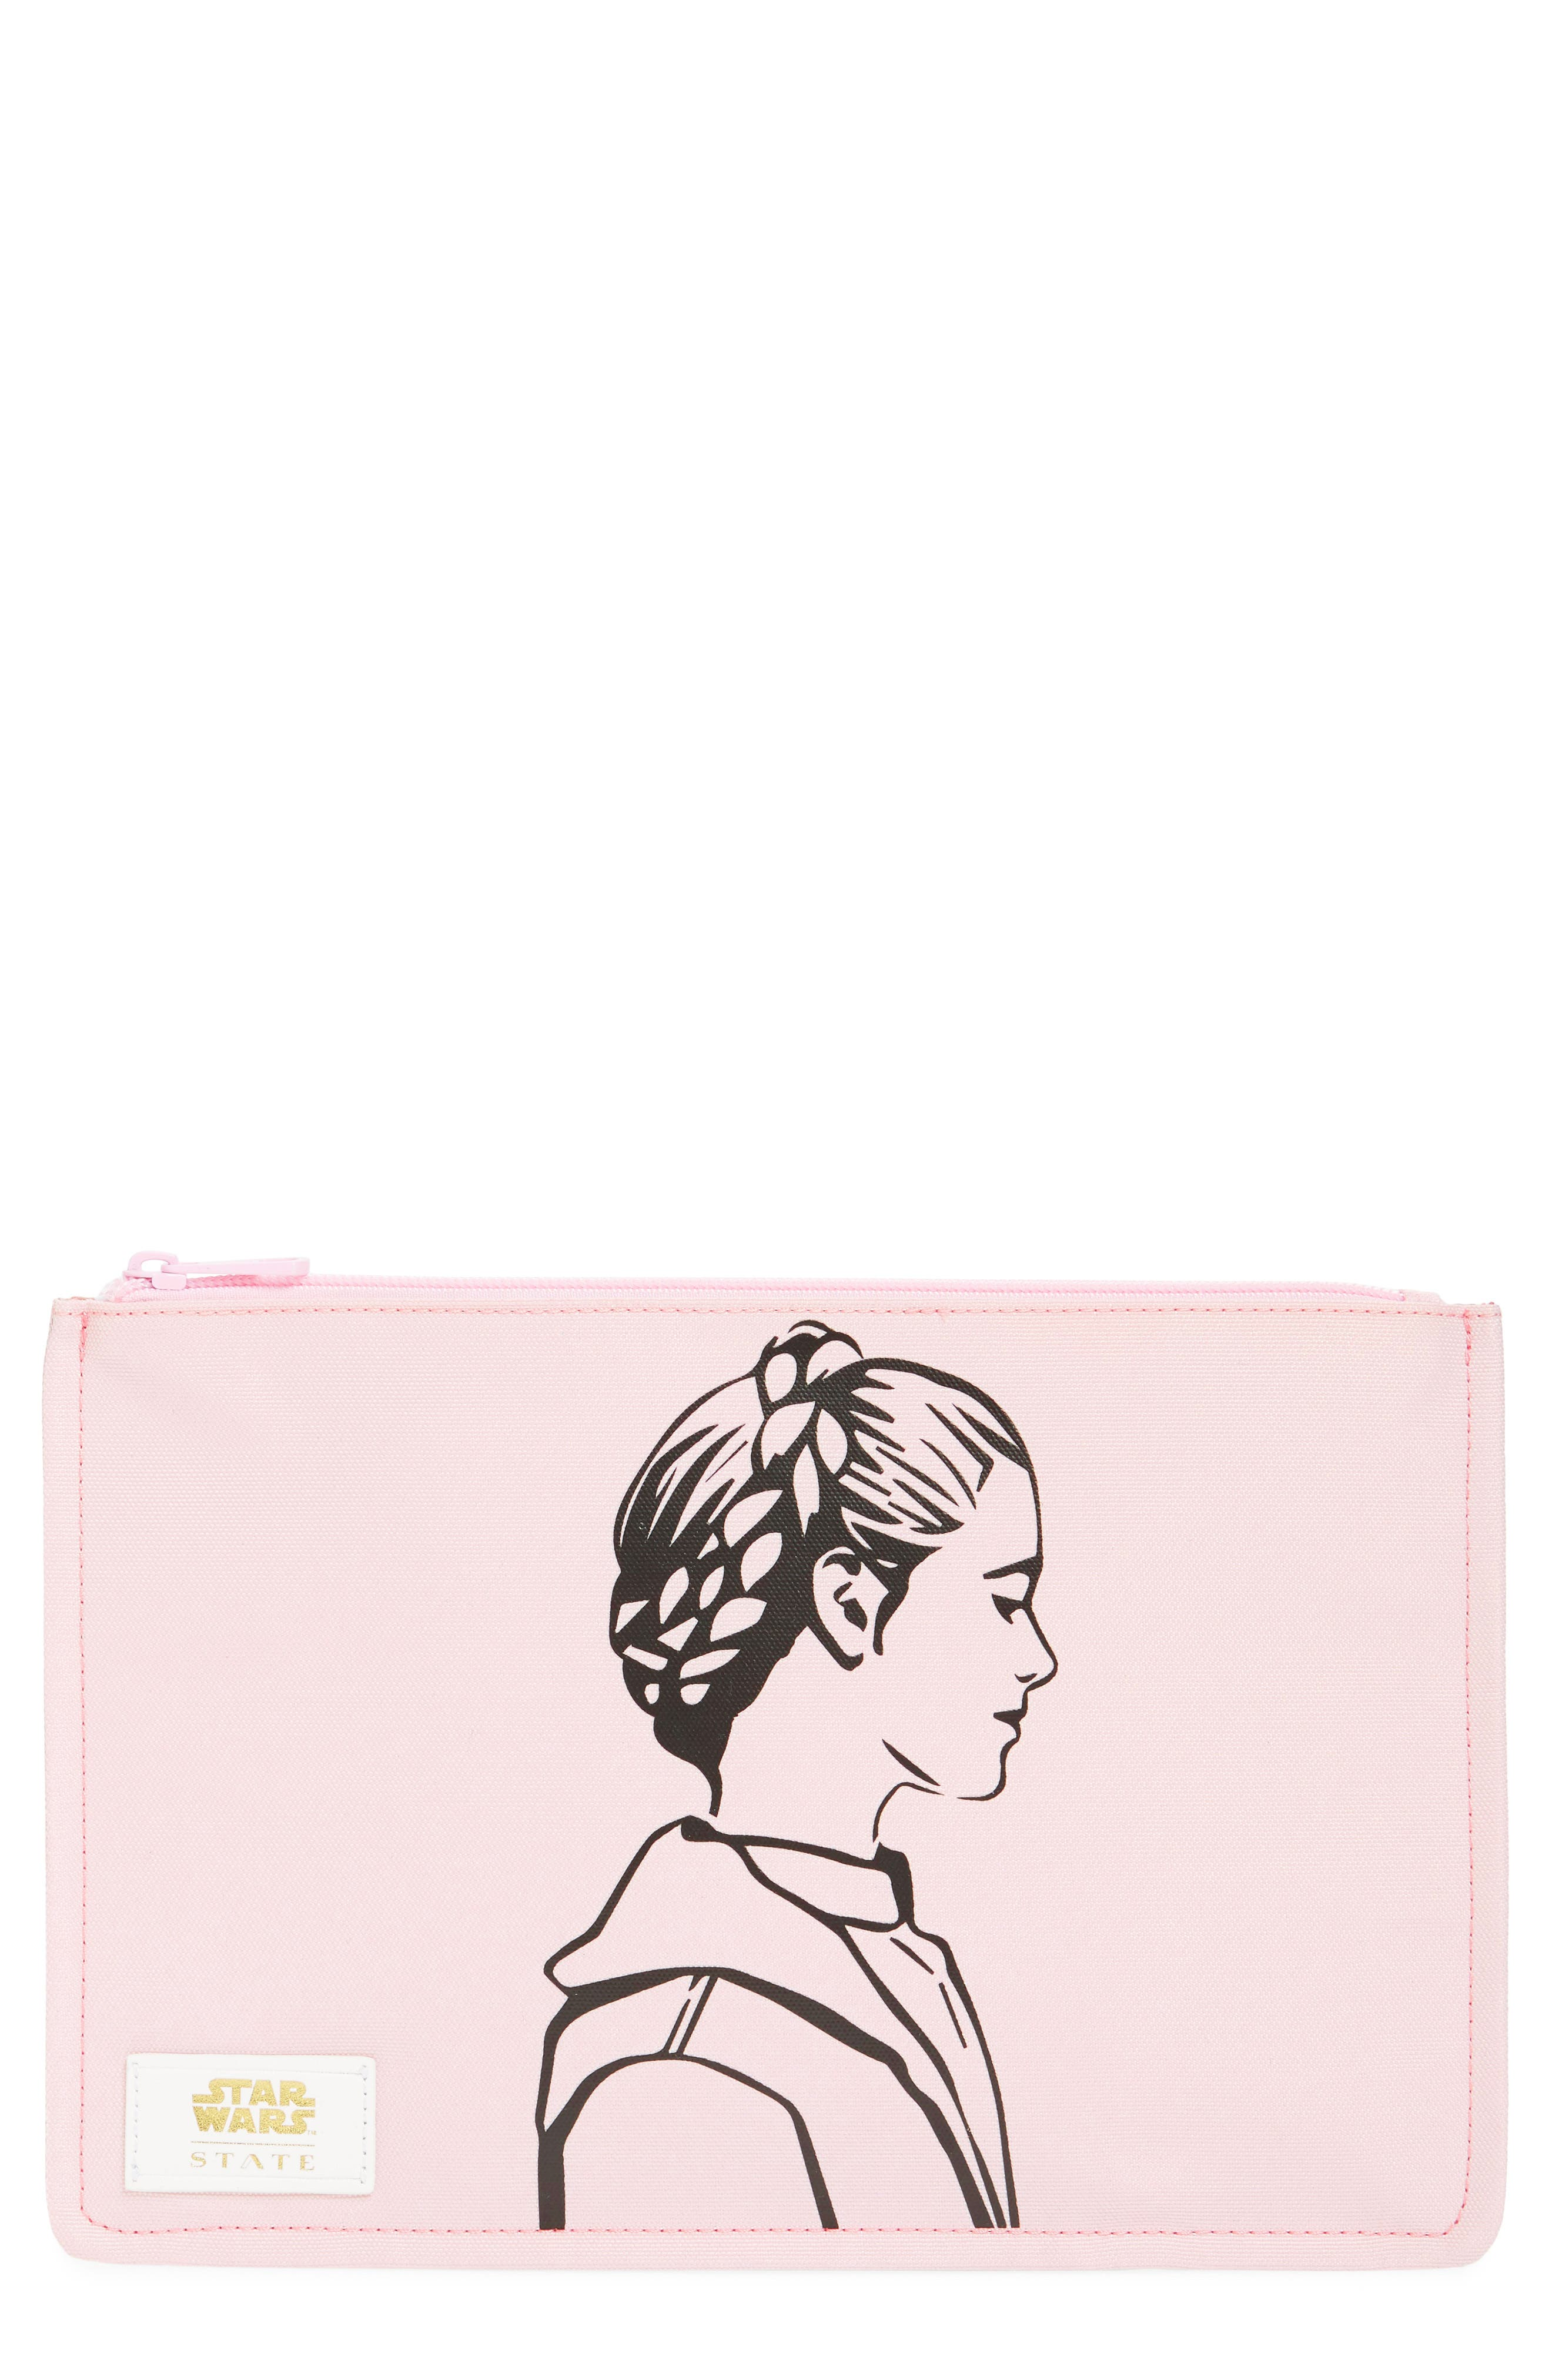 Main Image - STATE Bags Star Wars - Princess Leia Laurel Pouch